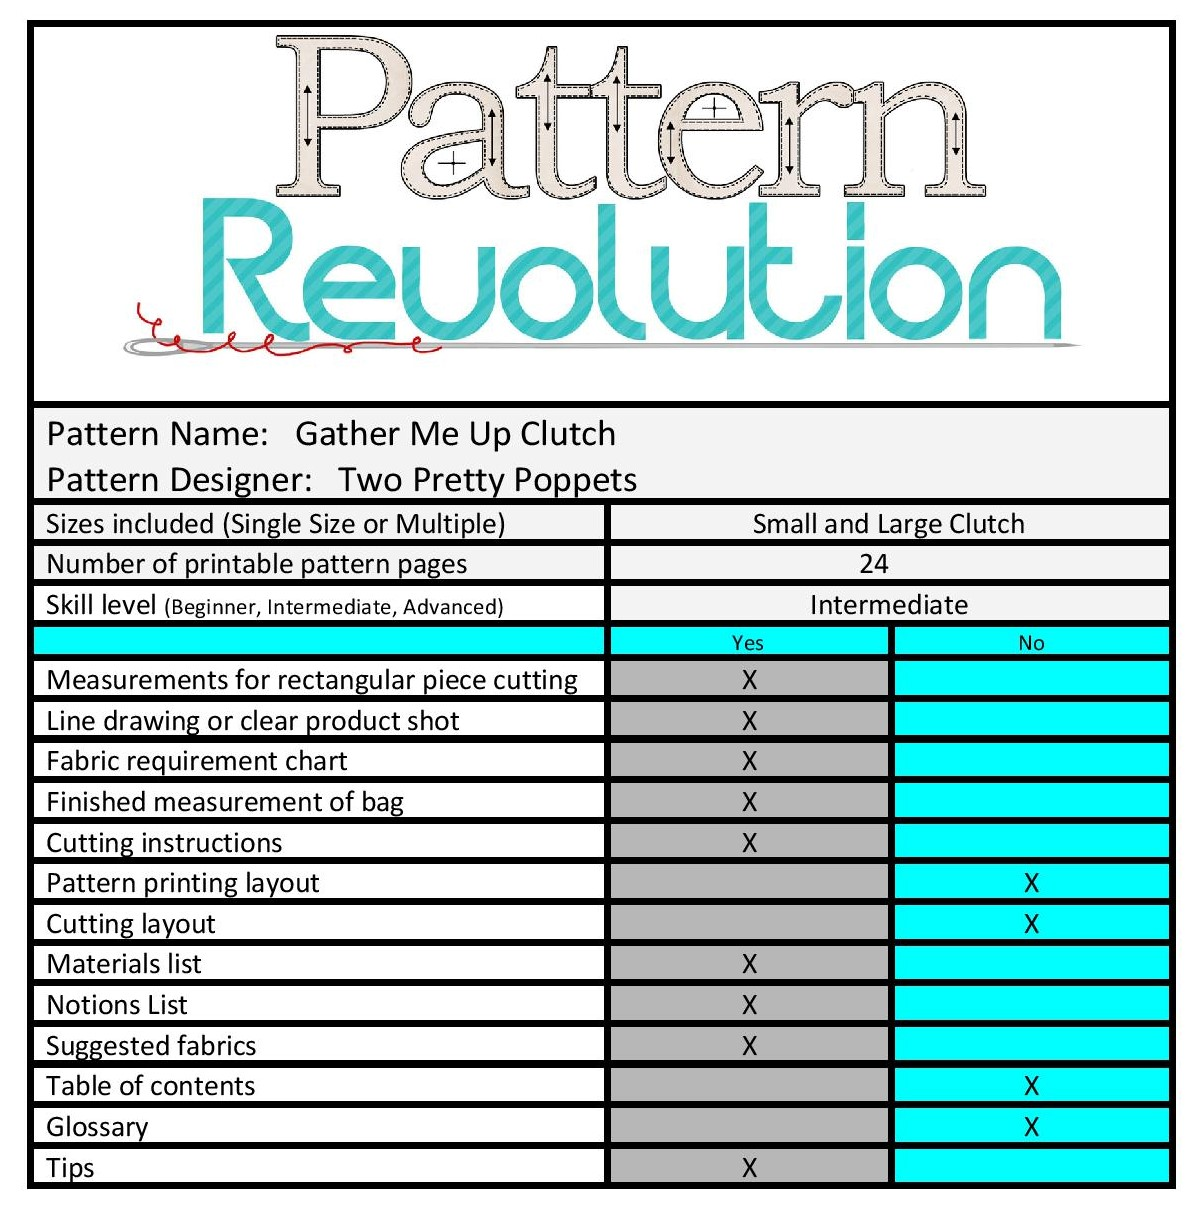 Gather Me Up Clutch by Two Pretty Poppets- Pattern Revolution